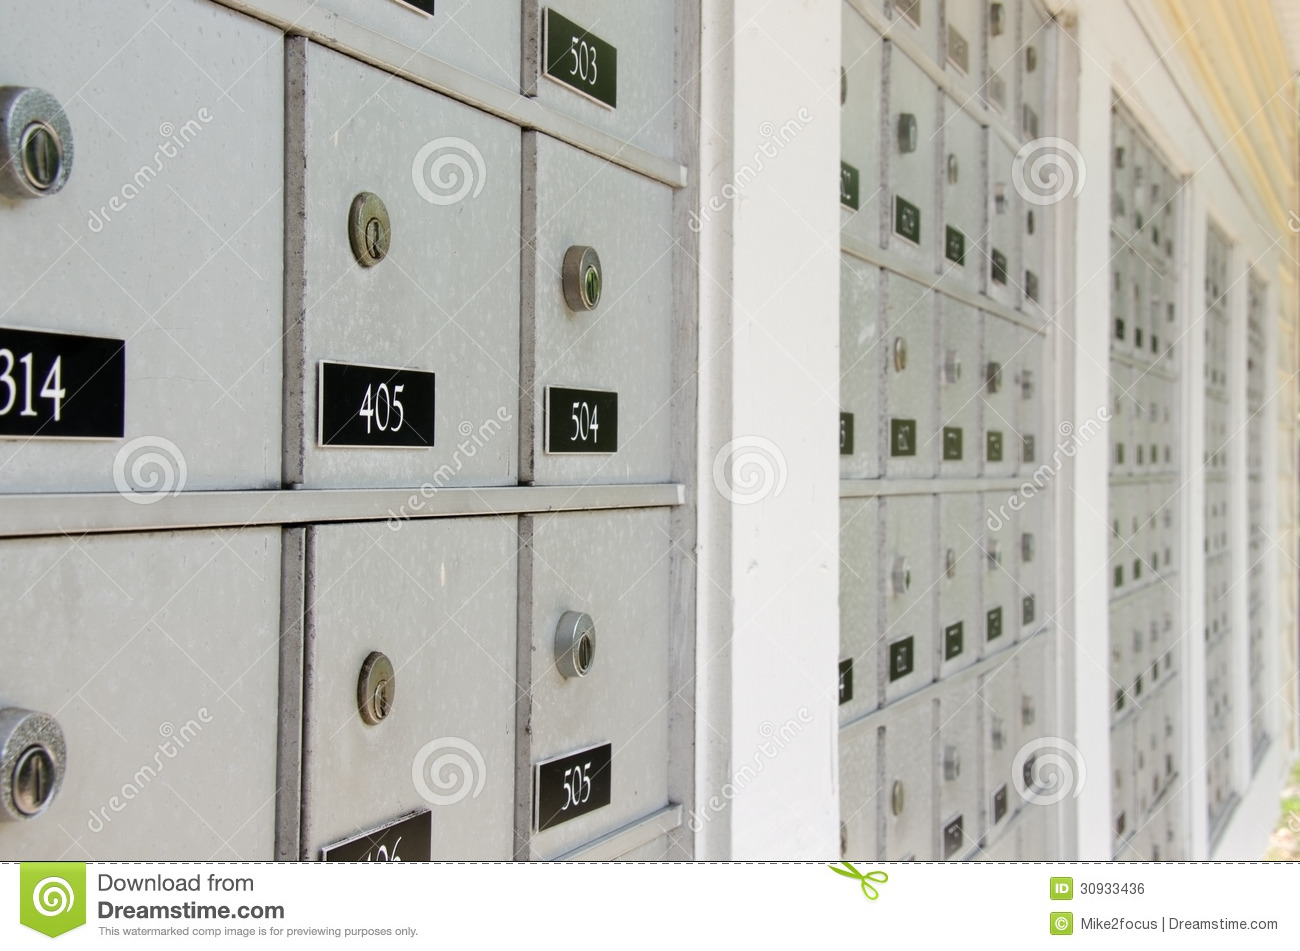 Closeup Of Metal Apartment Mailboxes With Locks Stock Photo ...